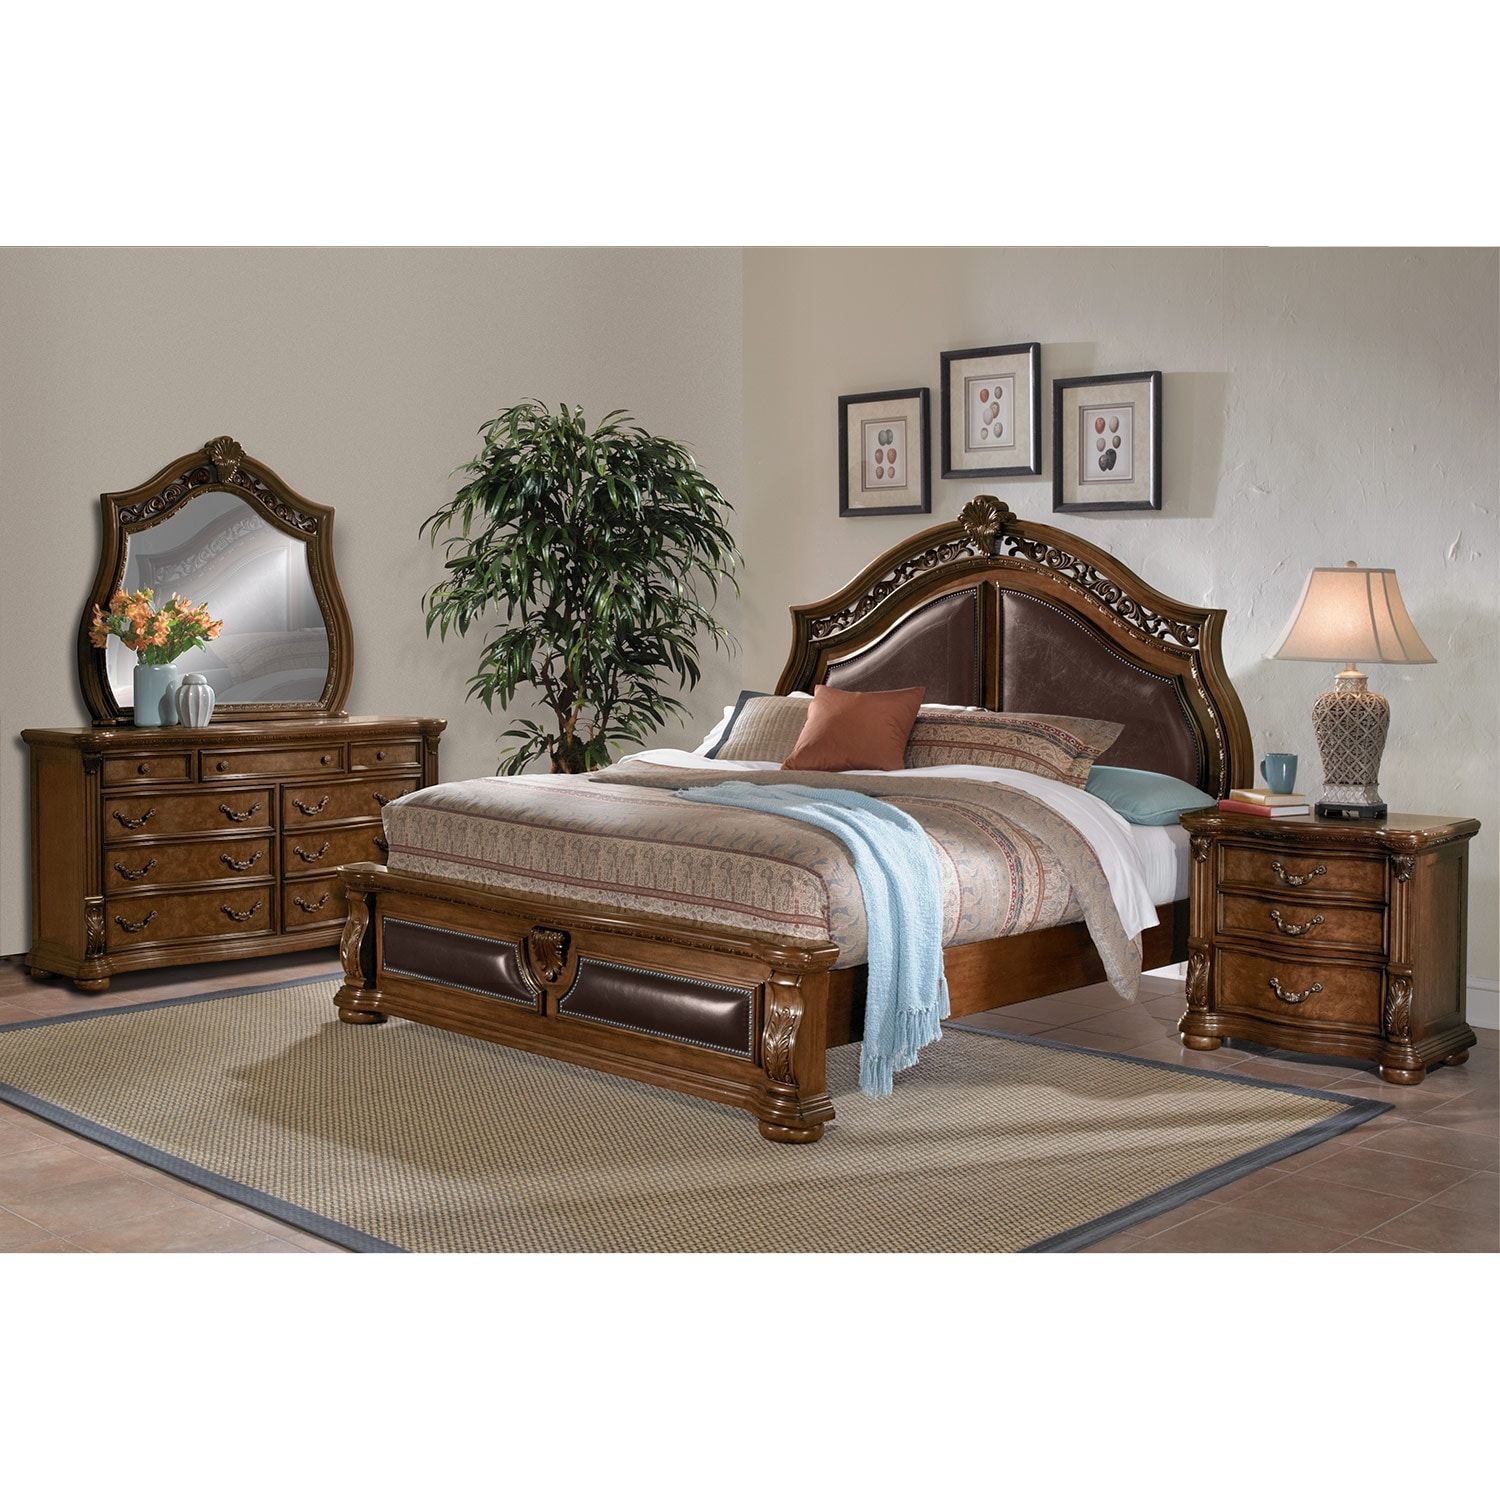 the morocco collection pecan american signature furniture. Black Bedroom Furniture Sets. Home Design Ideas